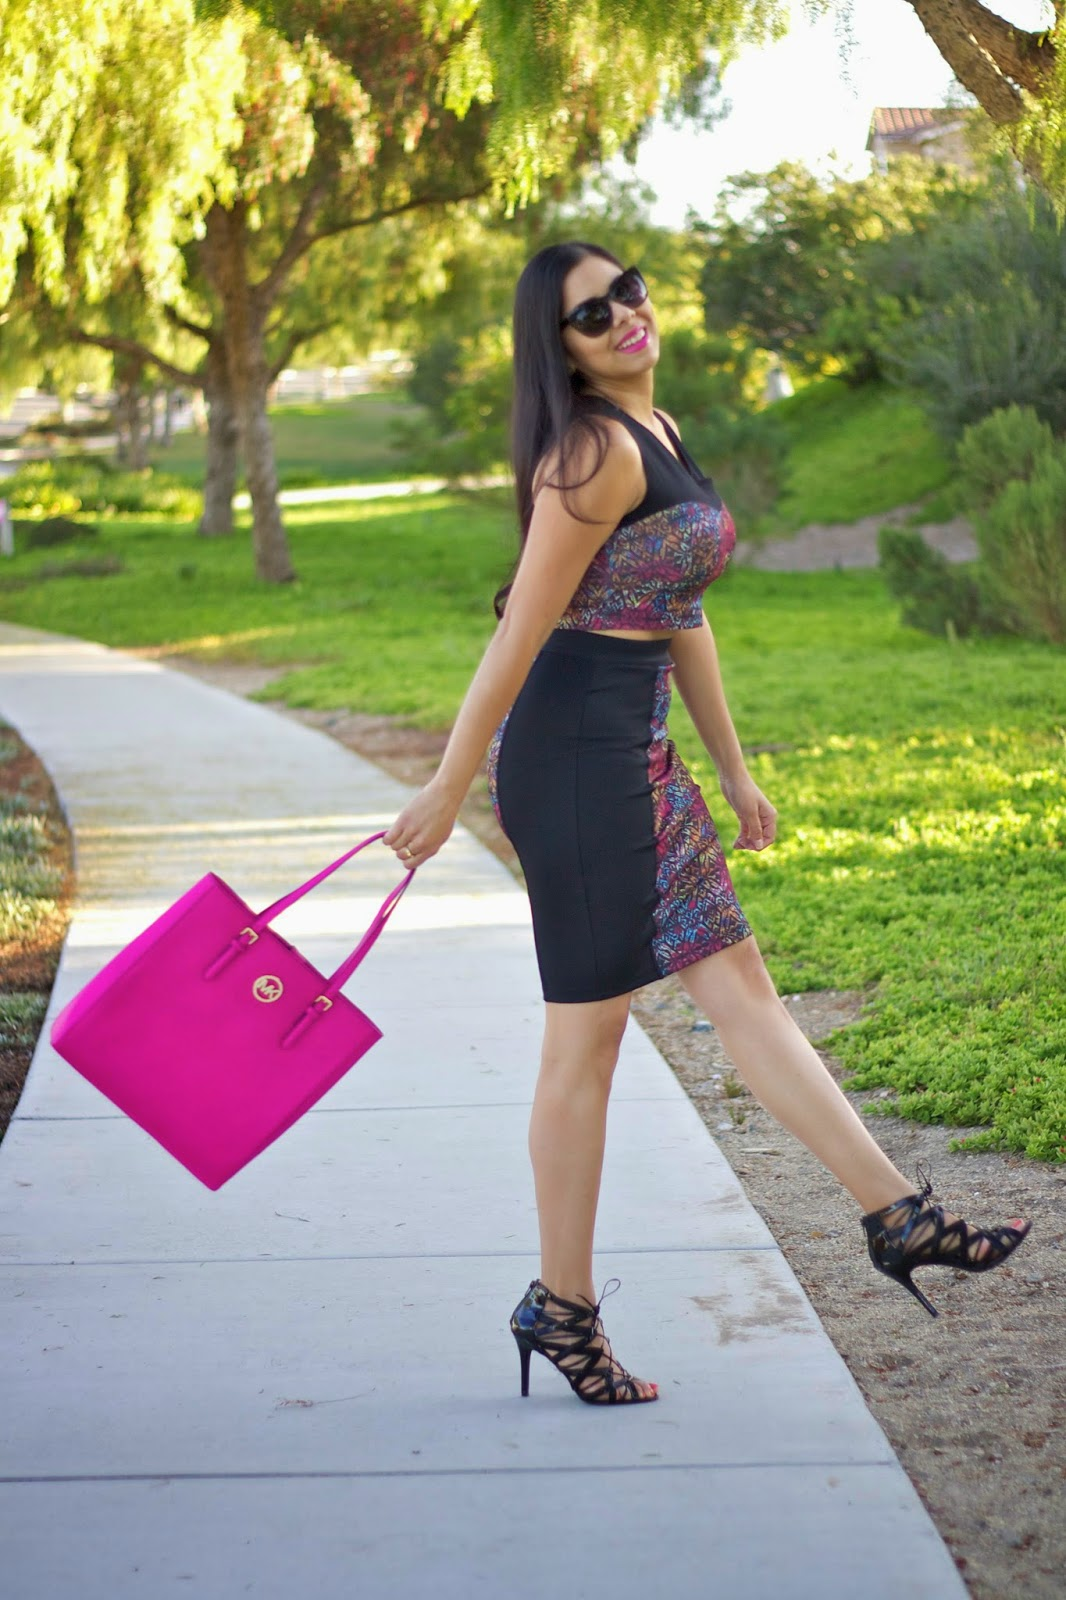 latina fashion blogger, latina style blogger, mexican style blogger, mexican fashion blogger, american fashion blogger, san diego fashion blogger, socal fashion blogger, so cal style blogger, chula vista fashion blogger, fashion blogging 101